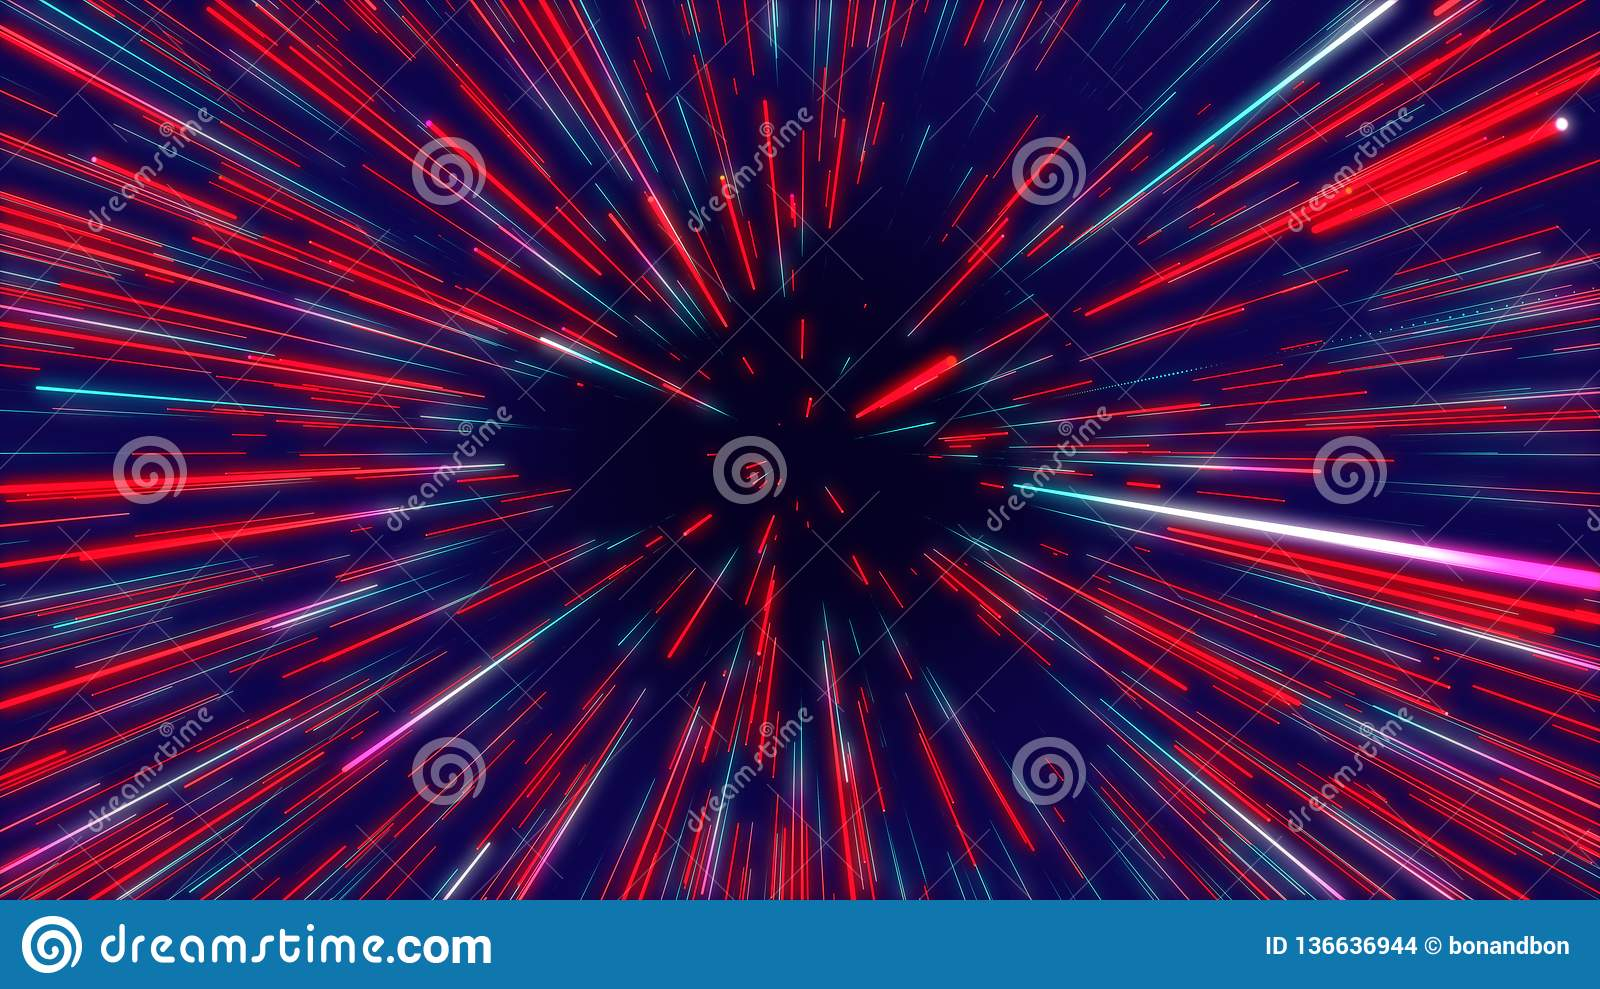 Red & blue abstract tunnel radial lines, geometric effect background.